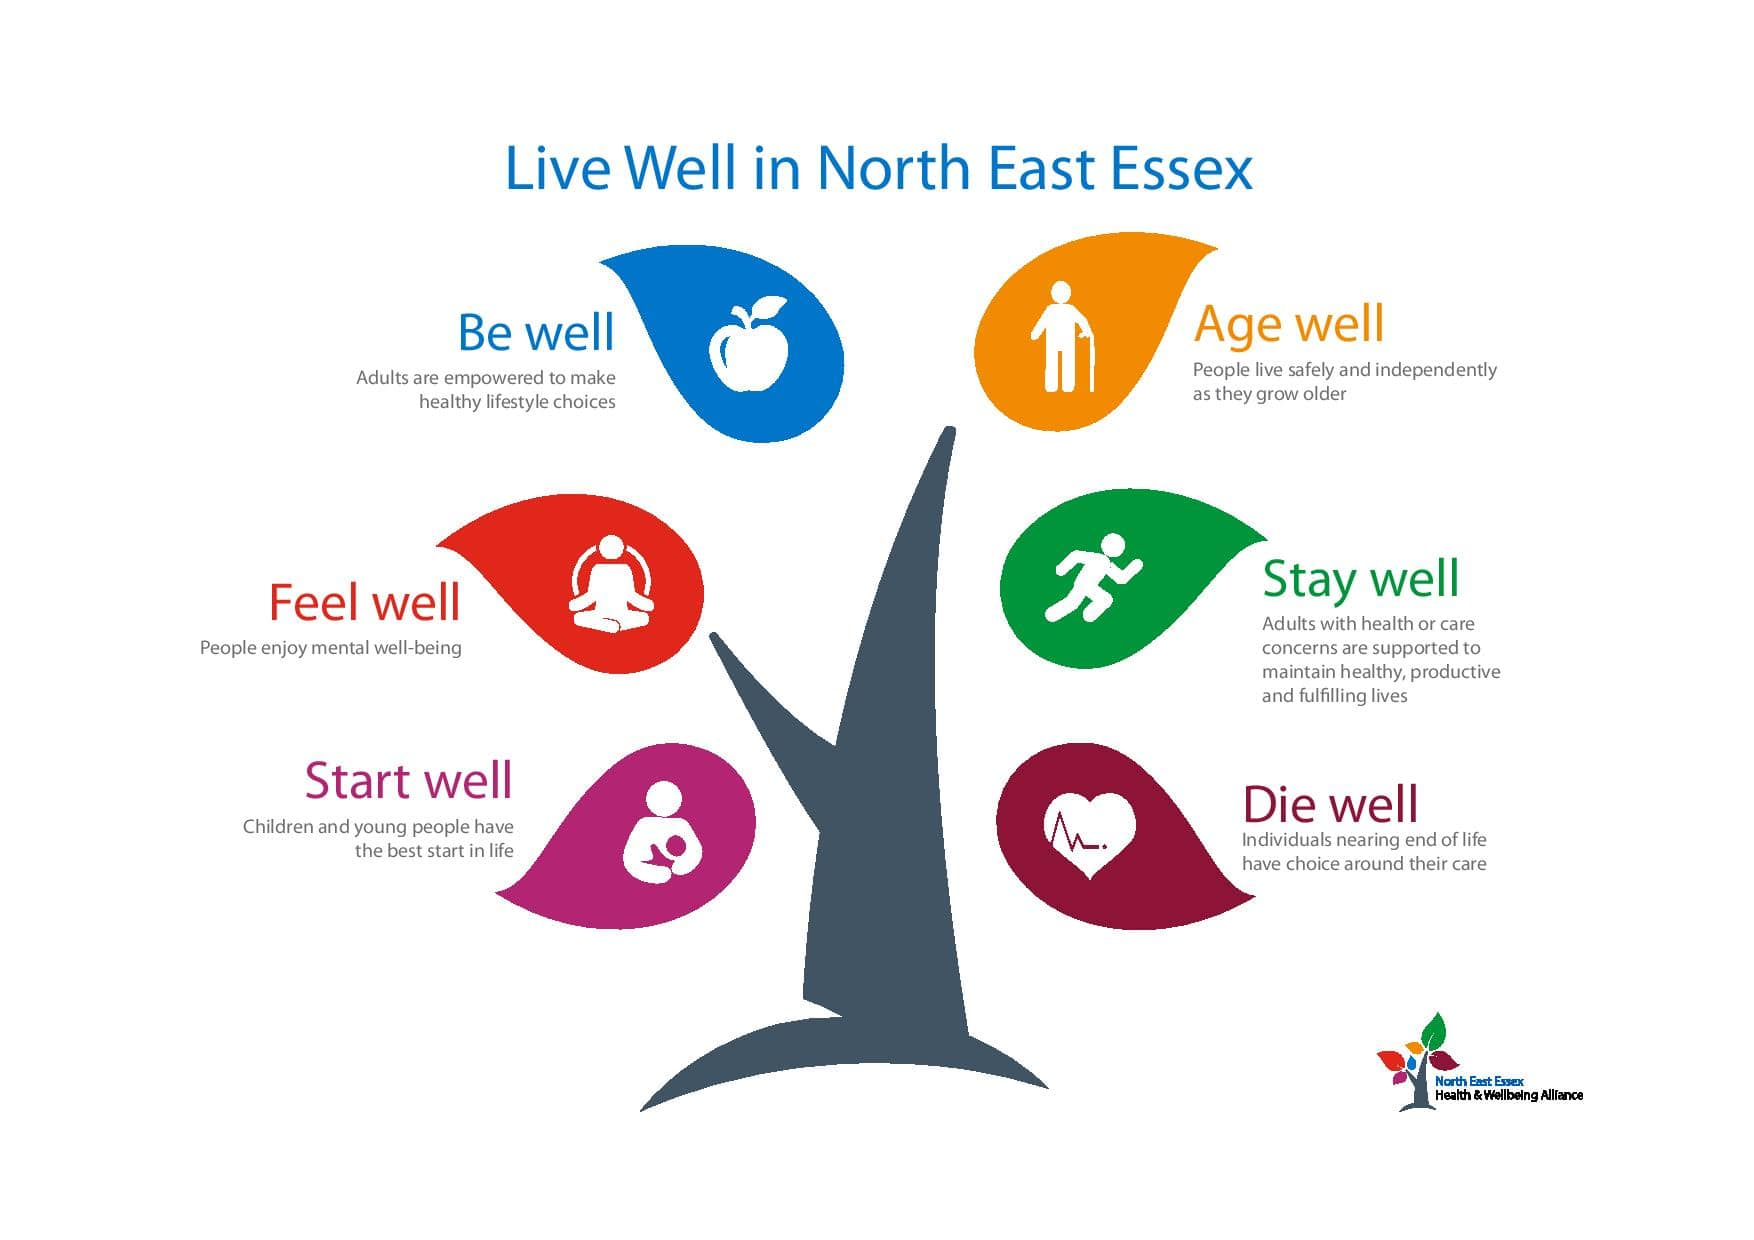 live well in North East Essex tree